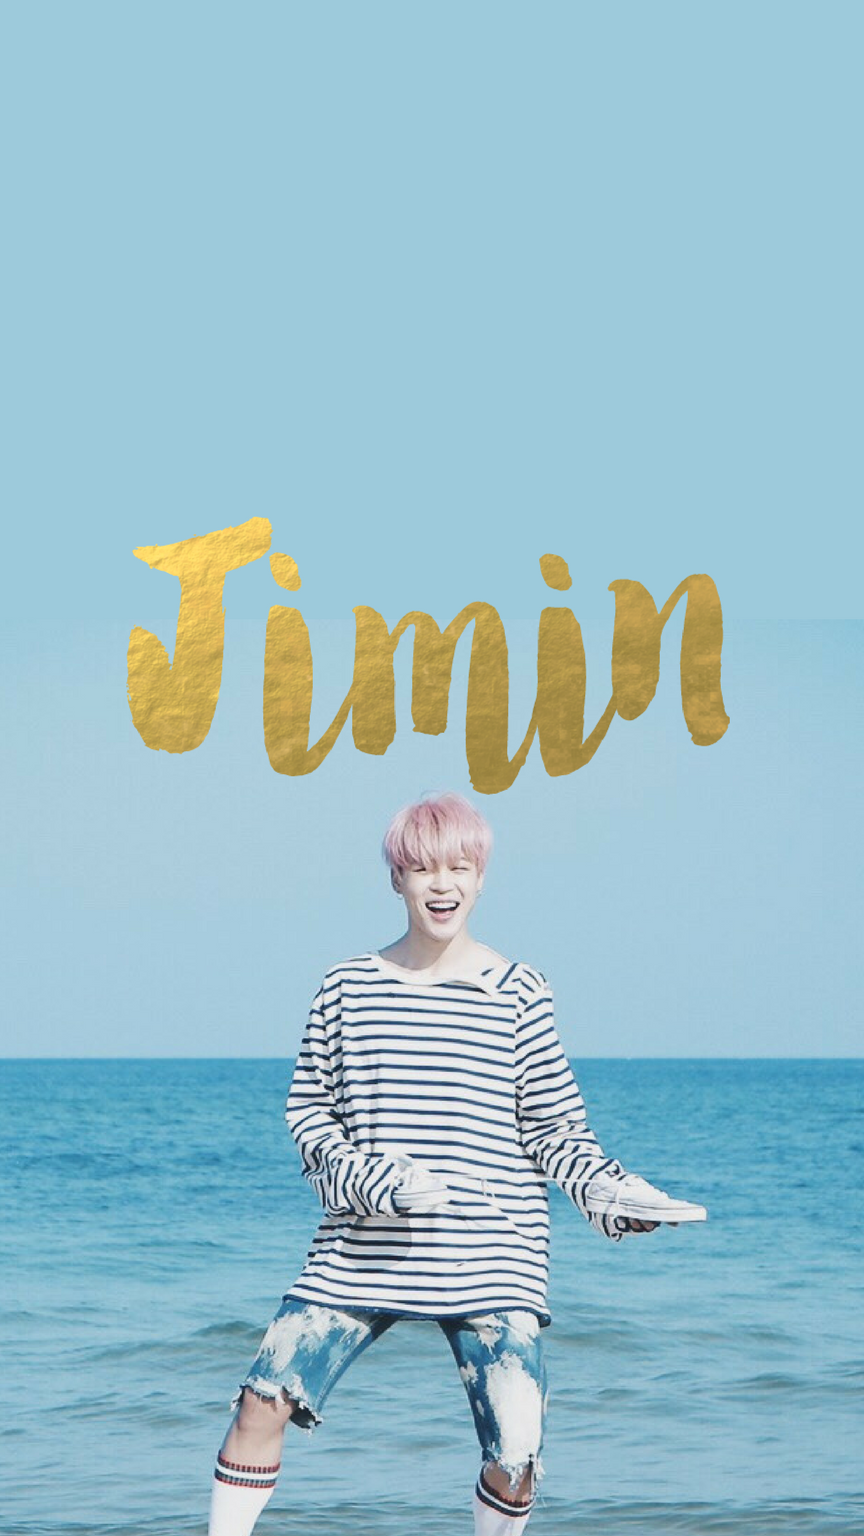 Jimin Wallpaper Iphone Jimin Wallpaper Park Jimin Bts Bts Wallpaper